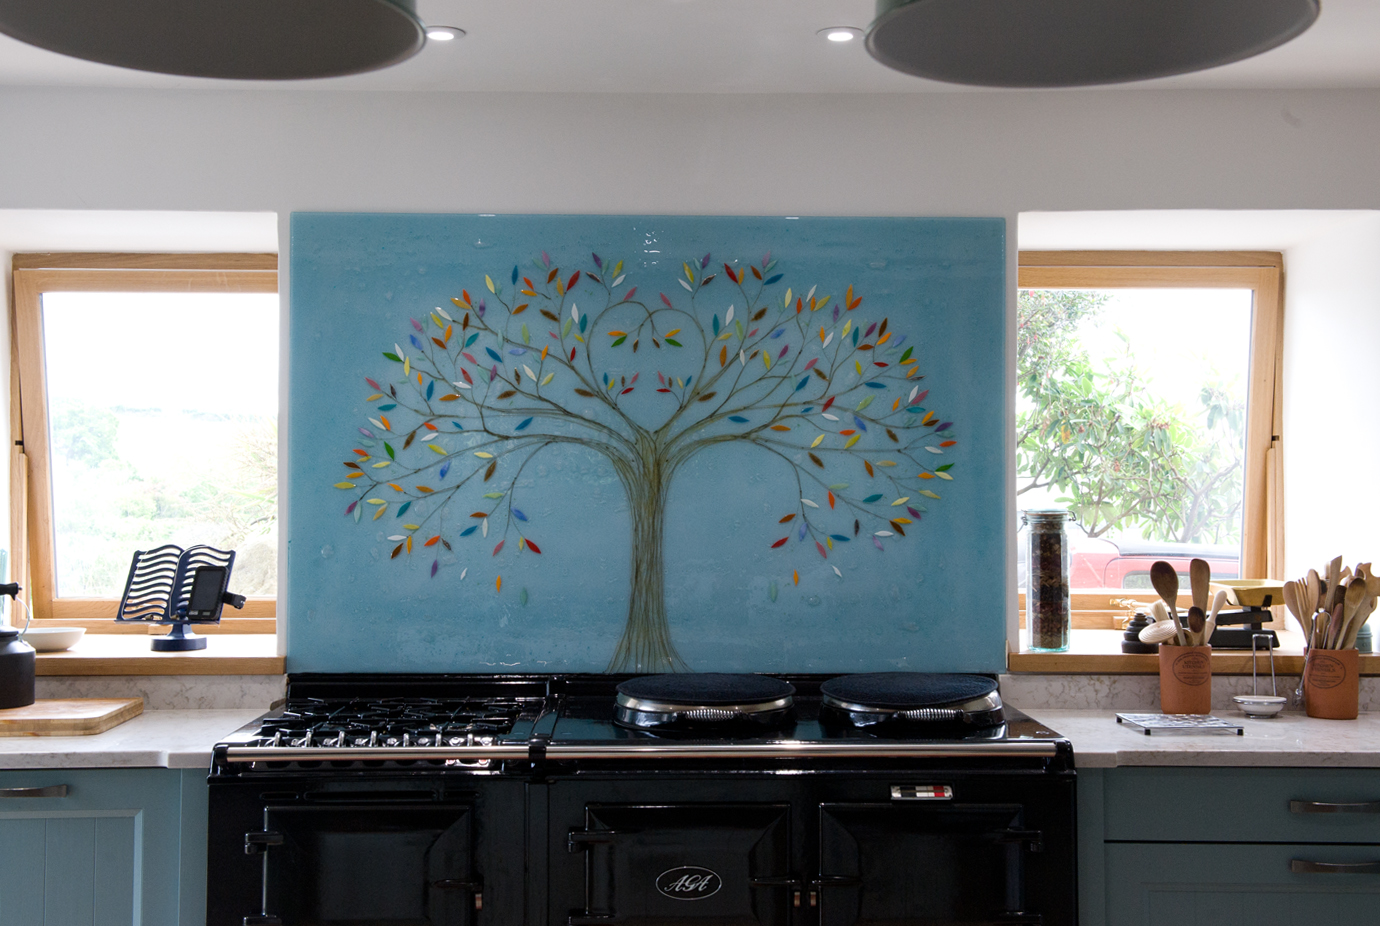 This is one of our glass splashbacks, sat perfectly in place as a centrepiece and ready to attract all the right kinds of attention!